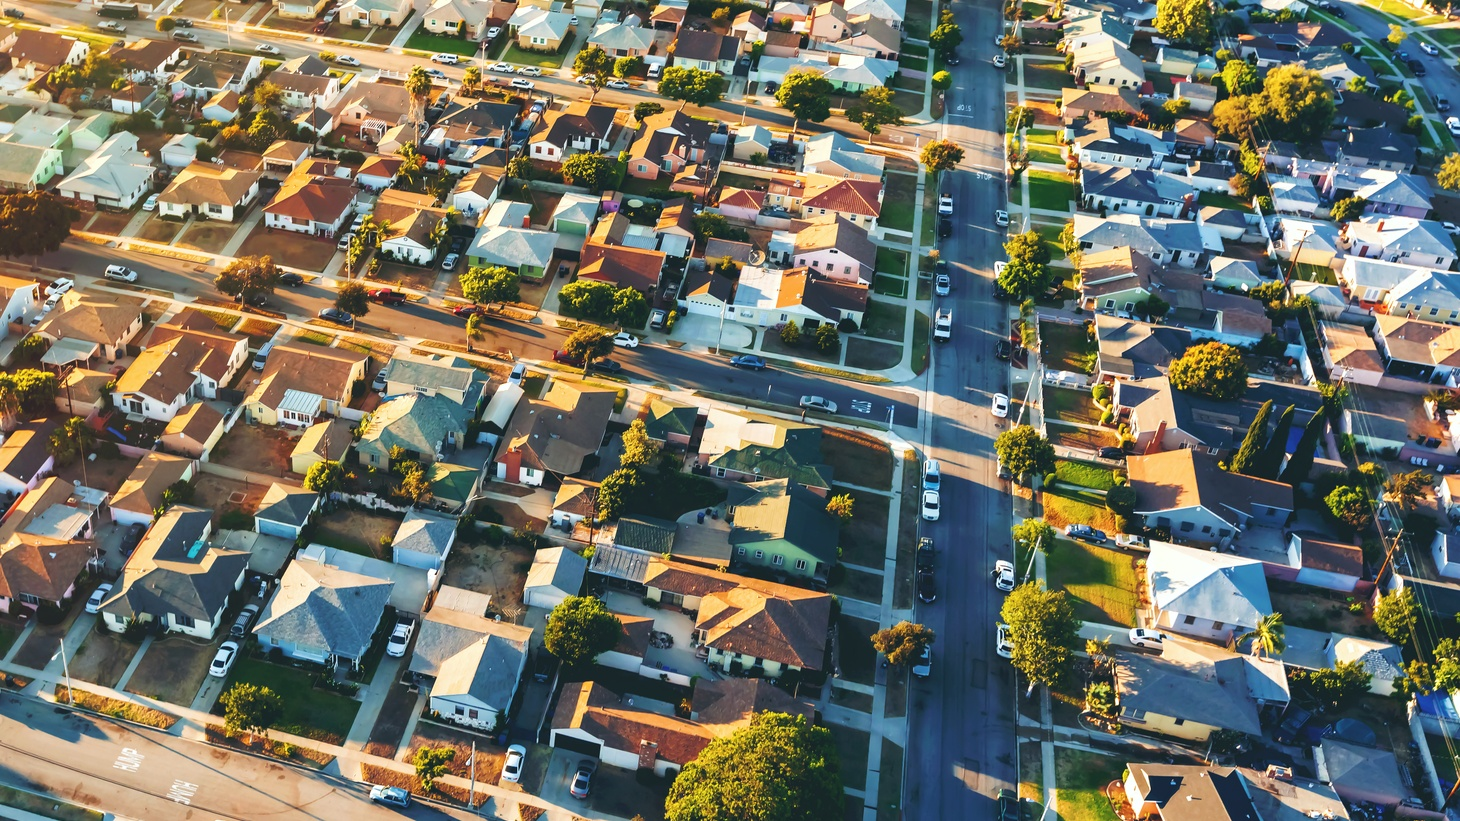 This aerial view shows a residential neighborhood in the Hawthorne neighborhood of Los Angeles, CA.